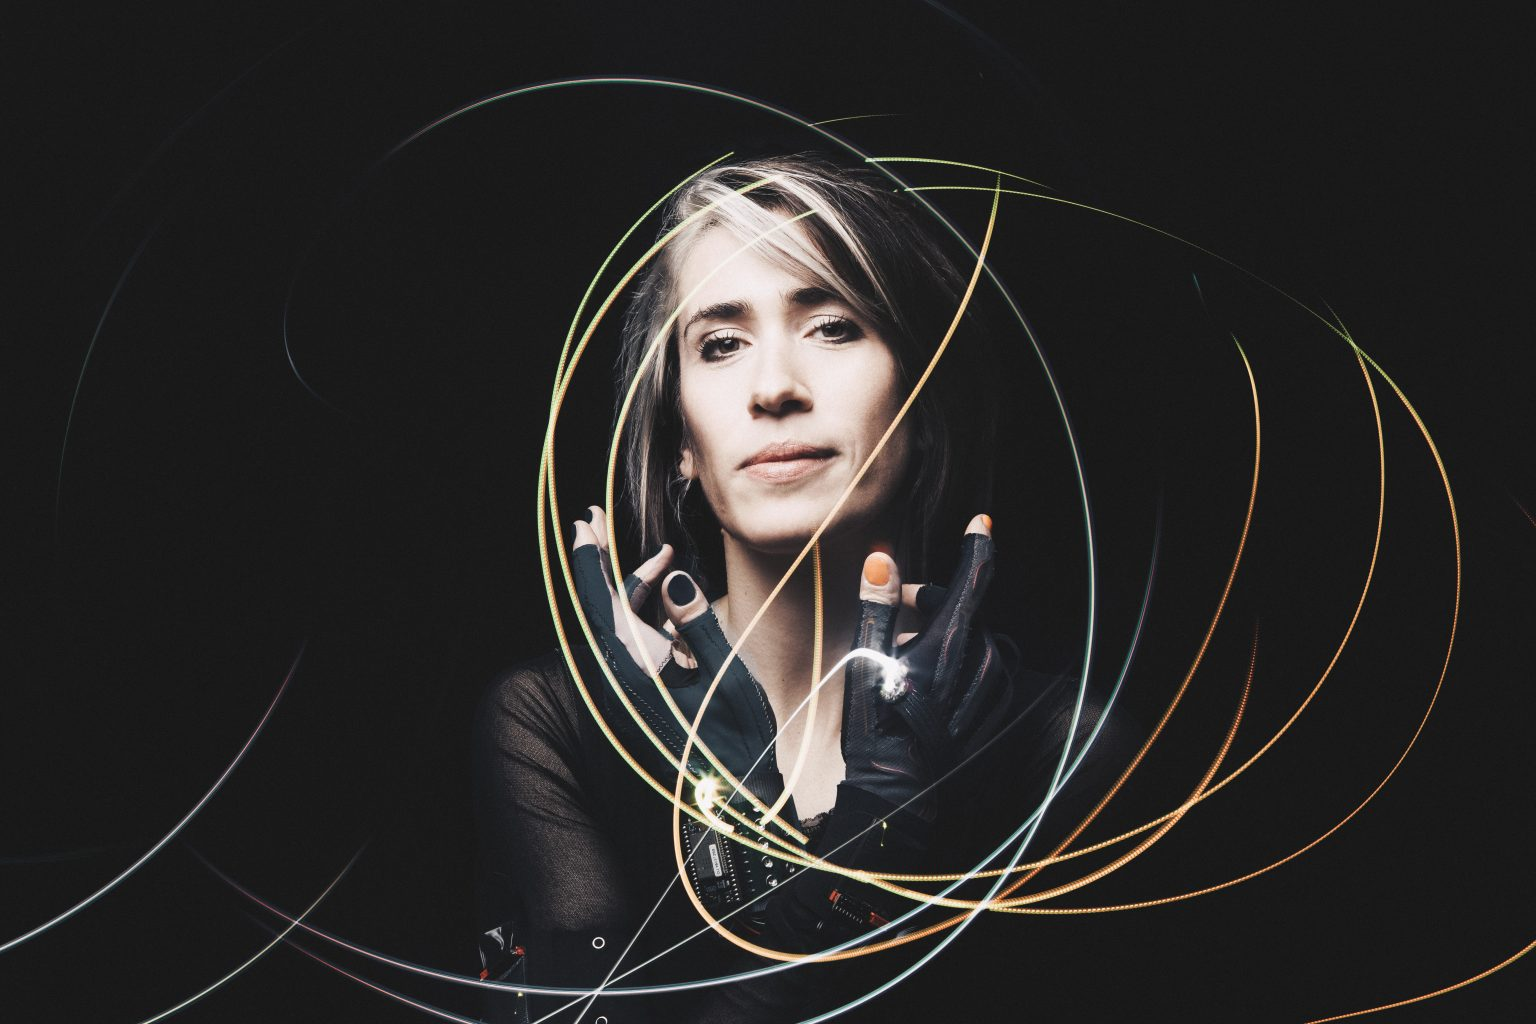 Image: Portrait of Imogen Heap modeling the Mi.Mu gloves